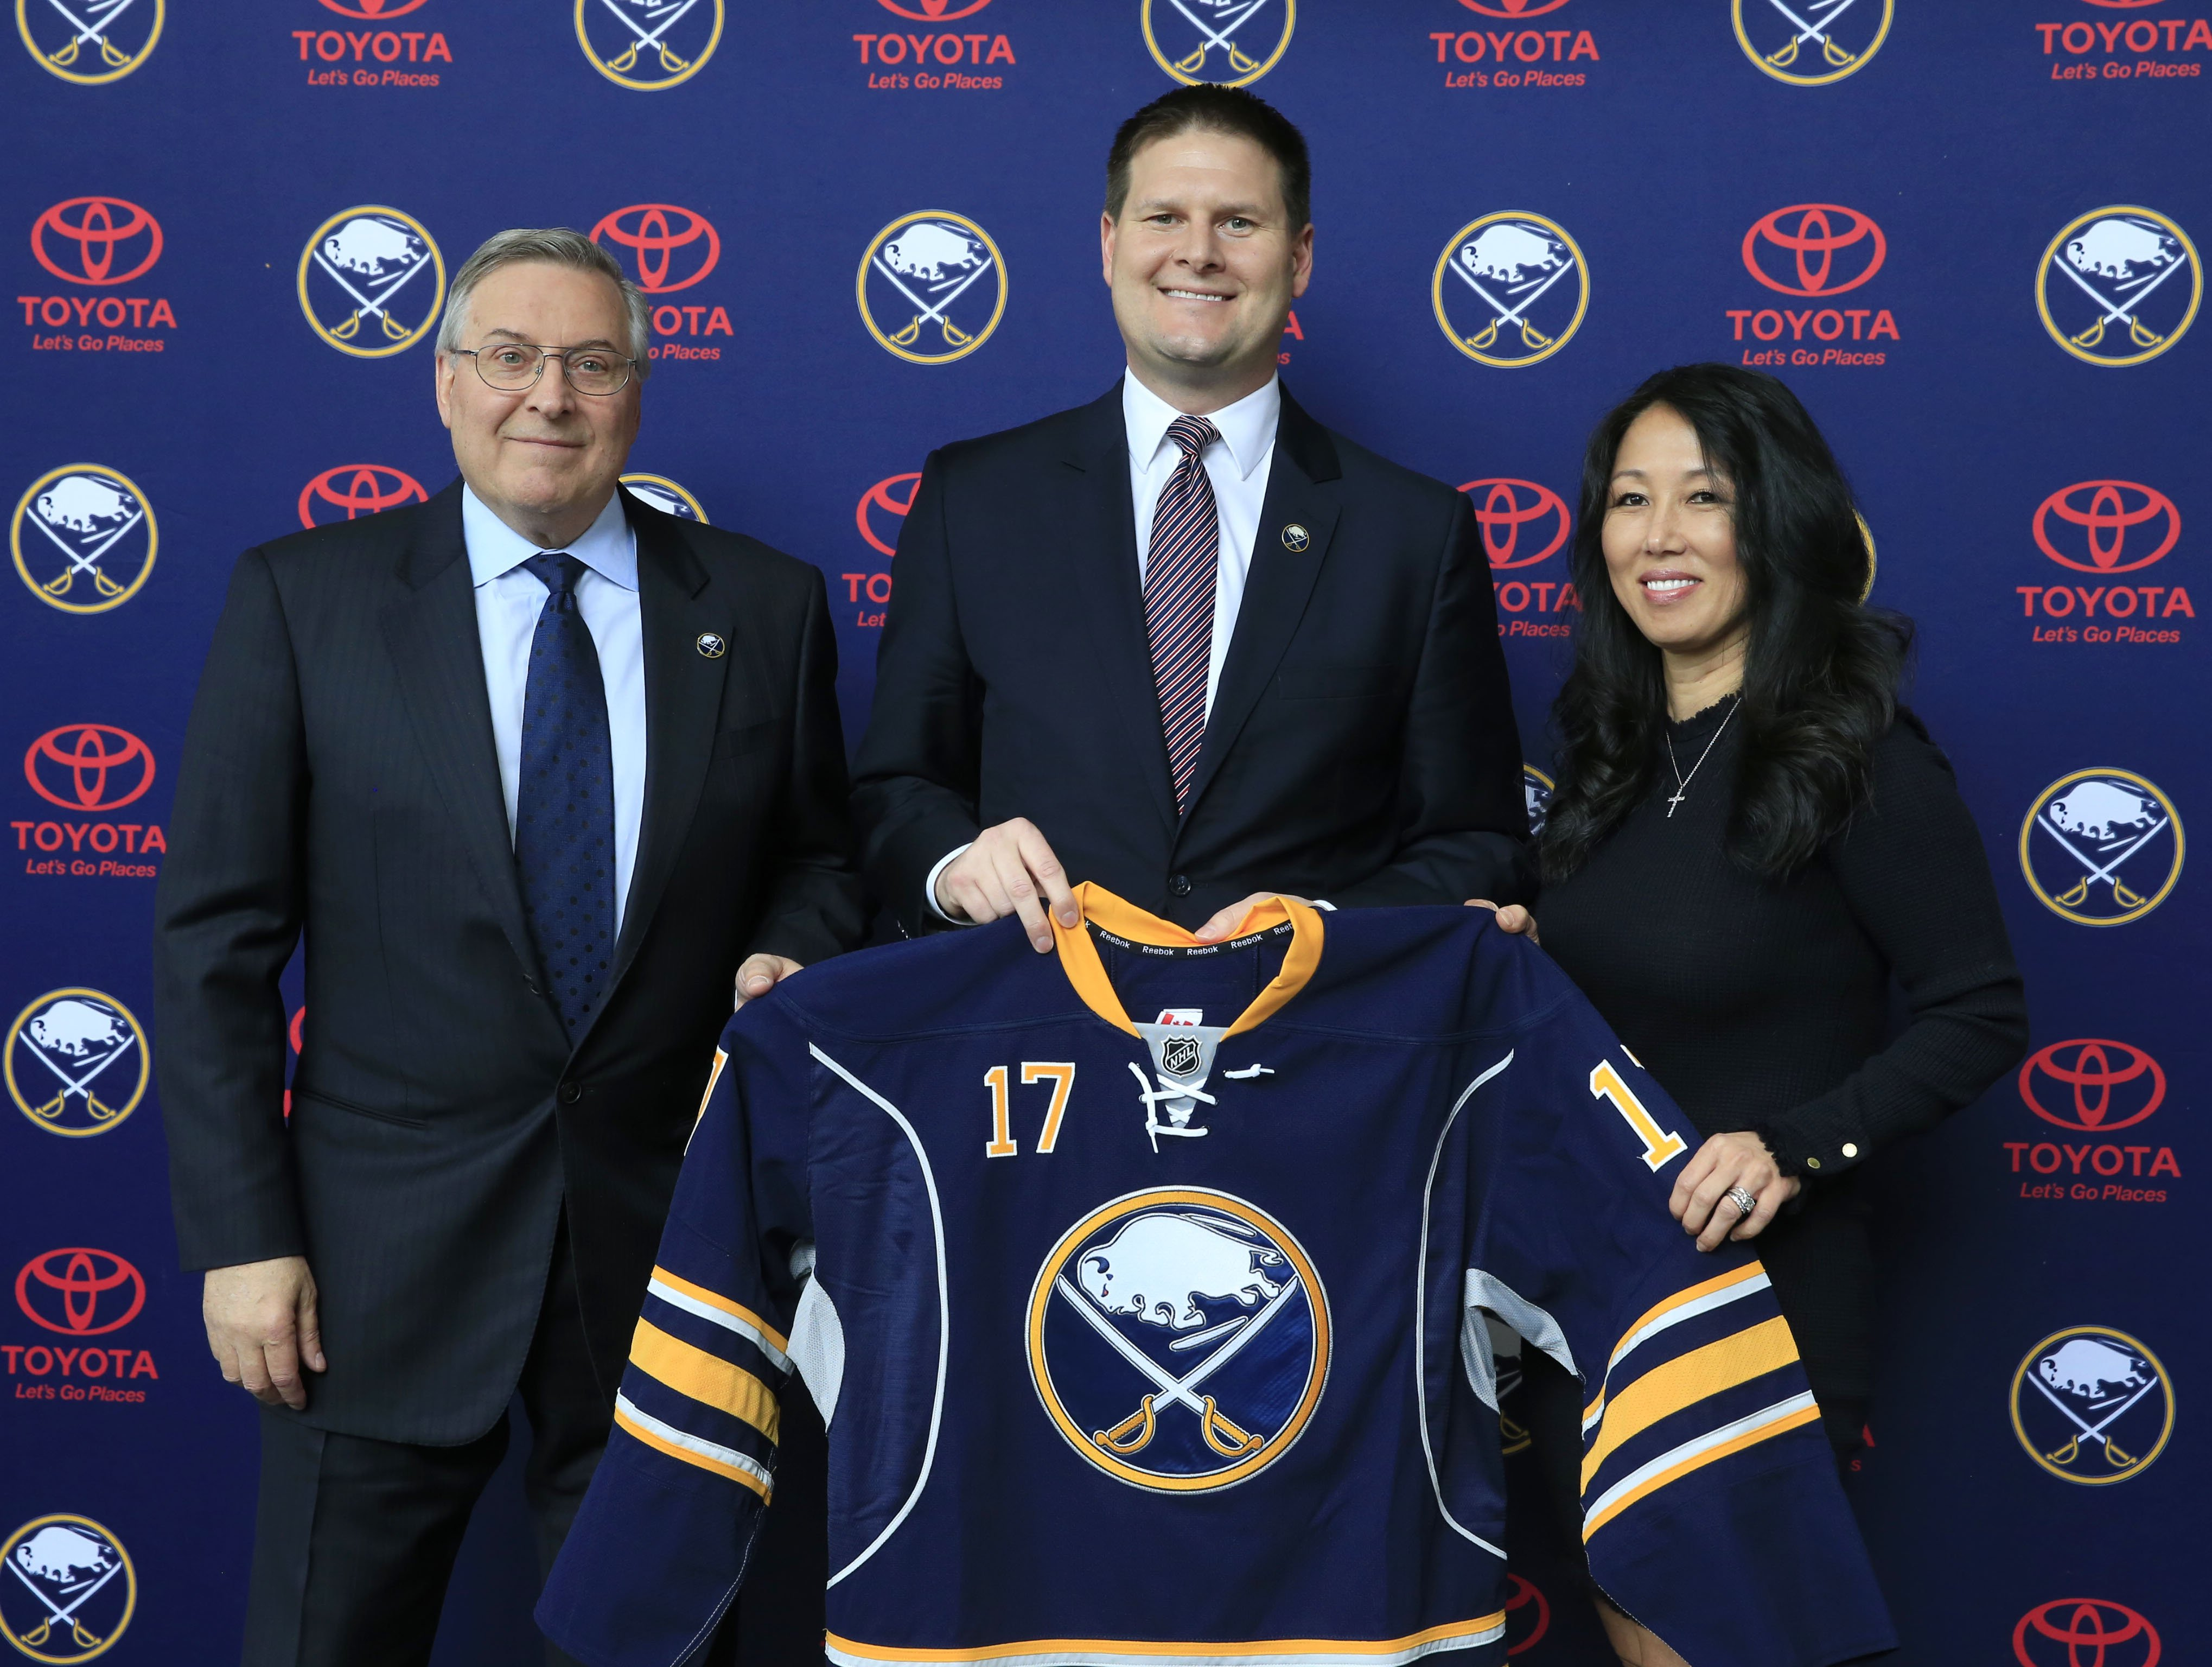 Jason Botterill, center, will lead the Sabres' coaching search and bring the finalists to owners Terry and Kim Pegula. (Harry Scull Jr./Buffalo News)